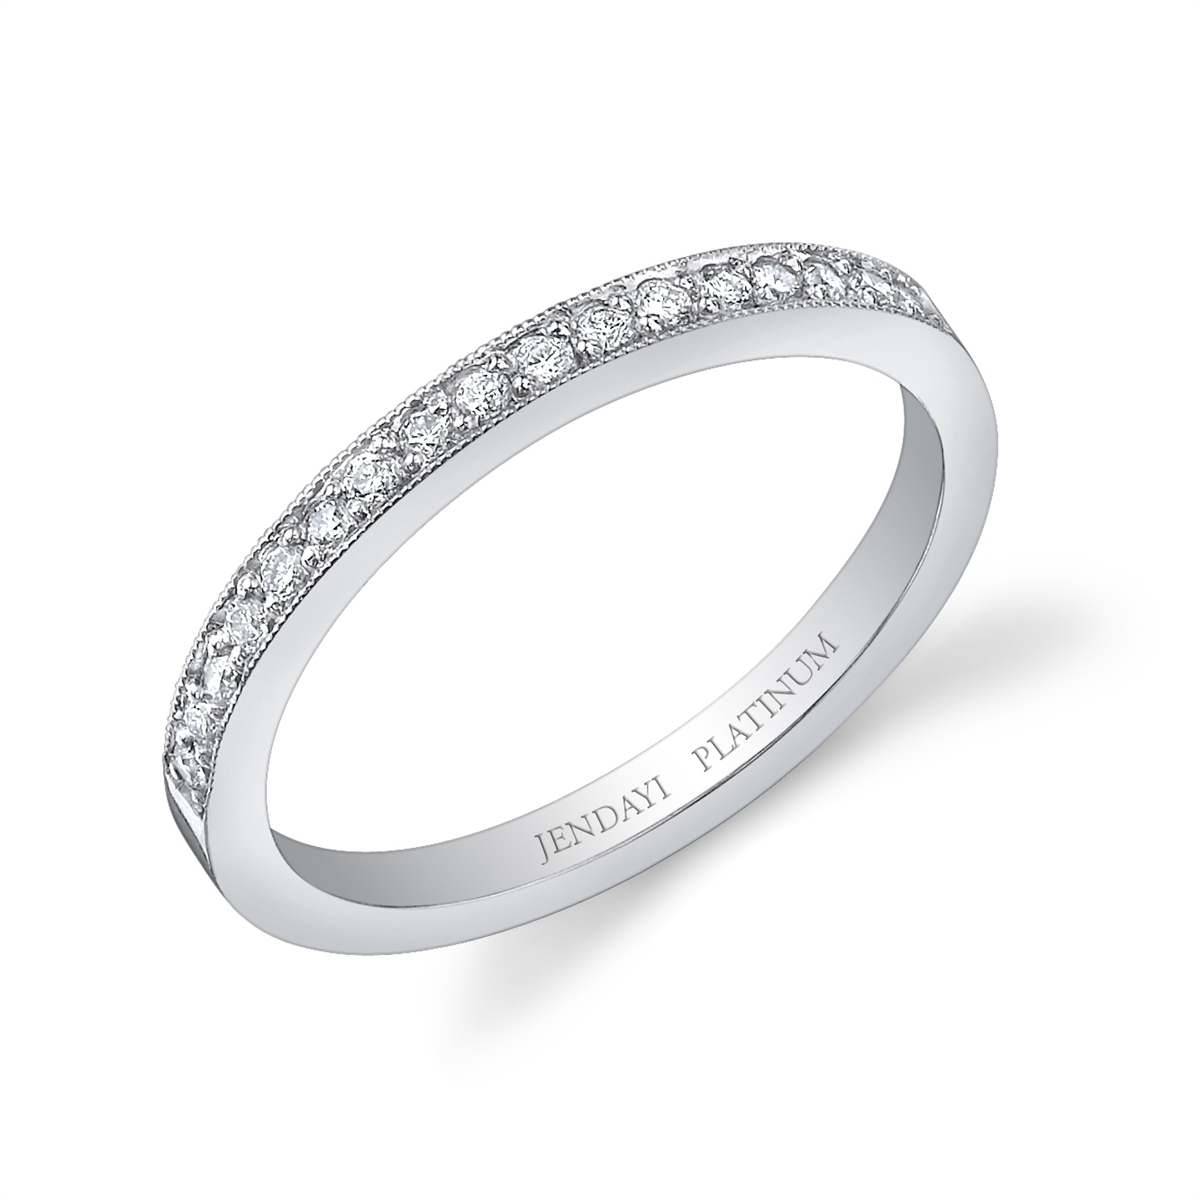 Selisa Pave Platinum Wedding / Anniversary Band Pertaining To Most Recently Released Diamond Anniversary Bands In Platinum (View 3 of 25)